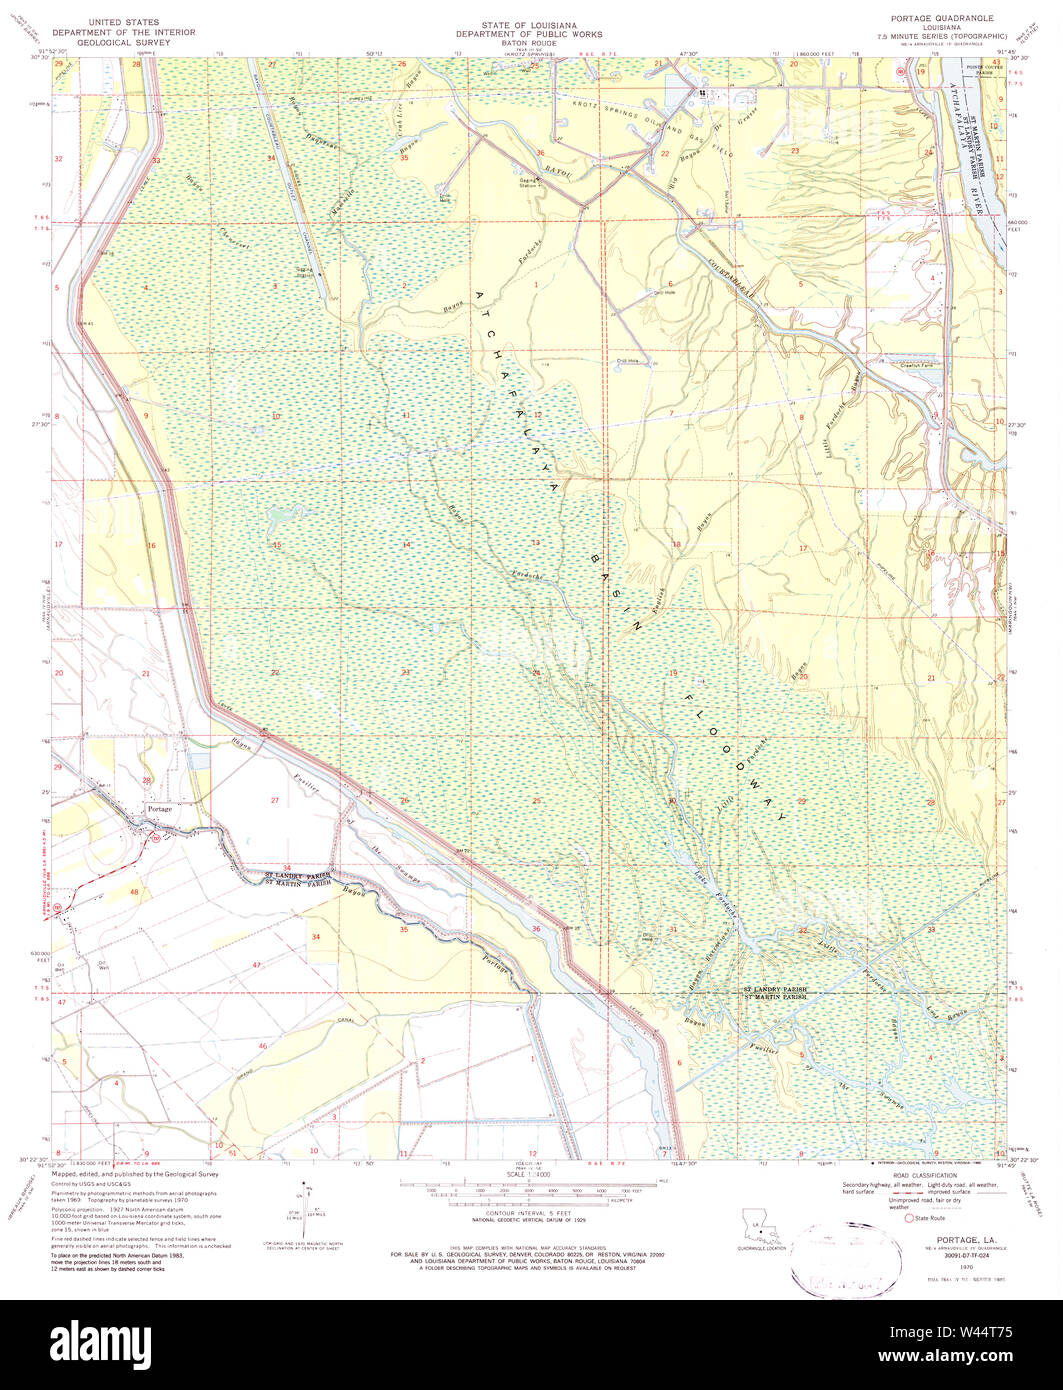 USGS TOPO Map Louisiana LA Portage 333127 1970 24000 - Stock Image